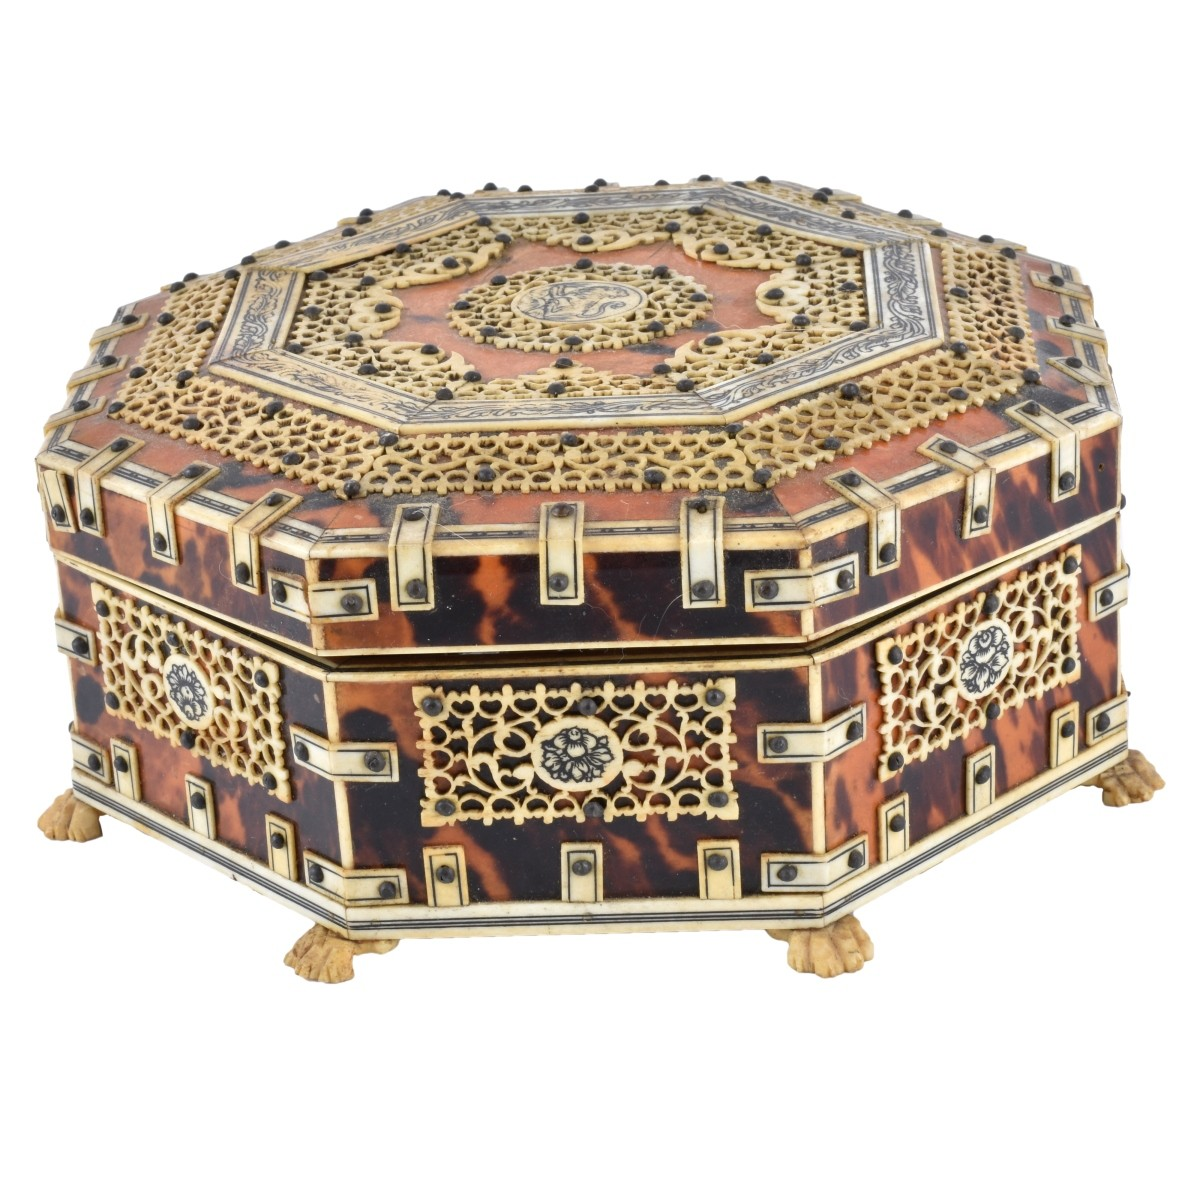 19th C. Anglo-Indian Box